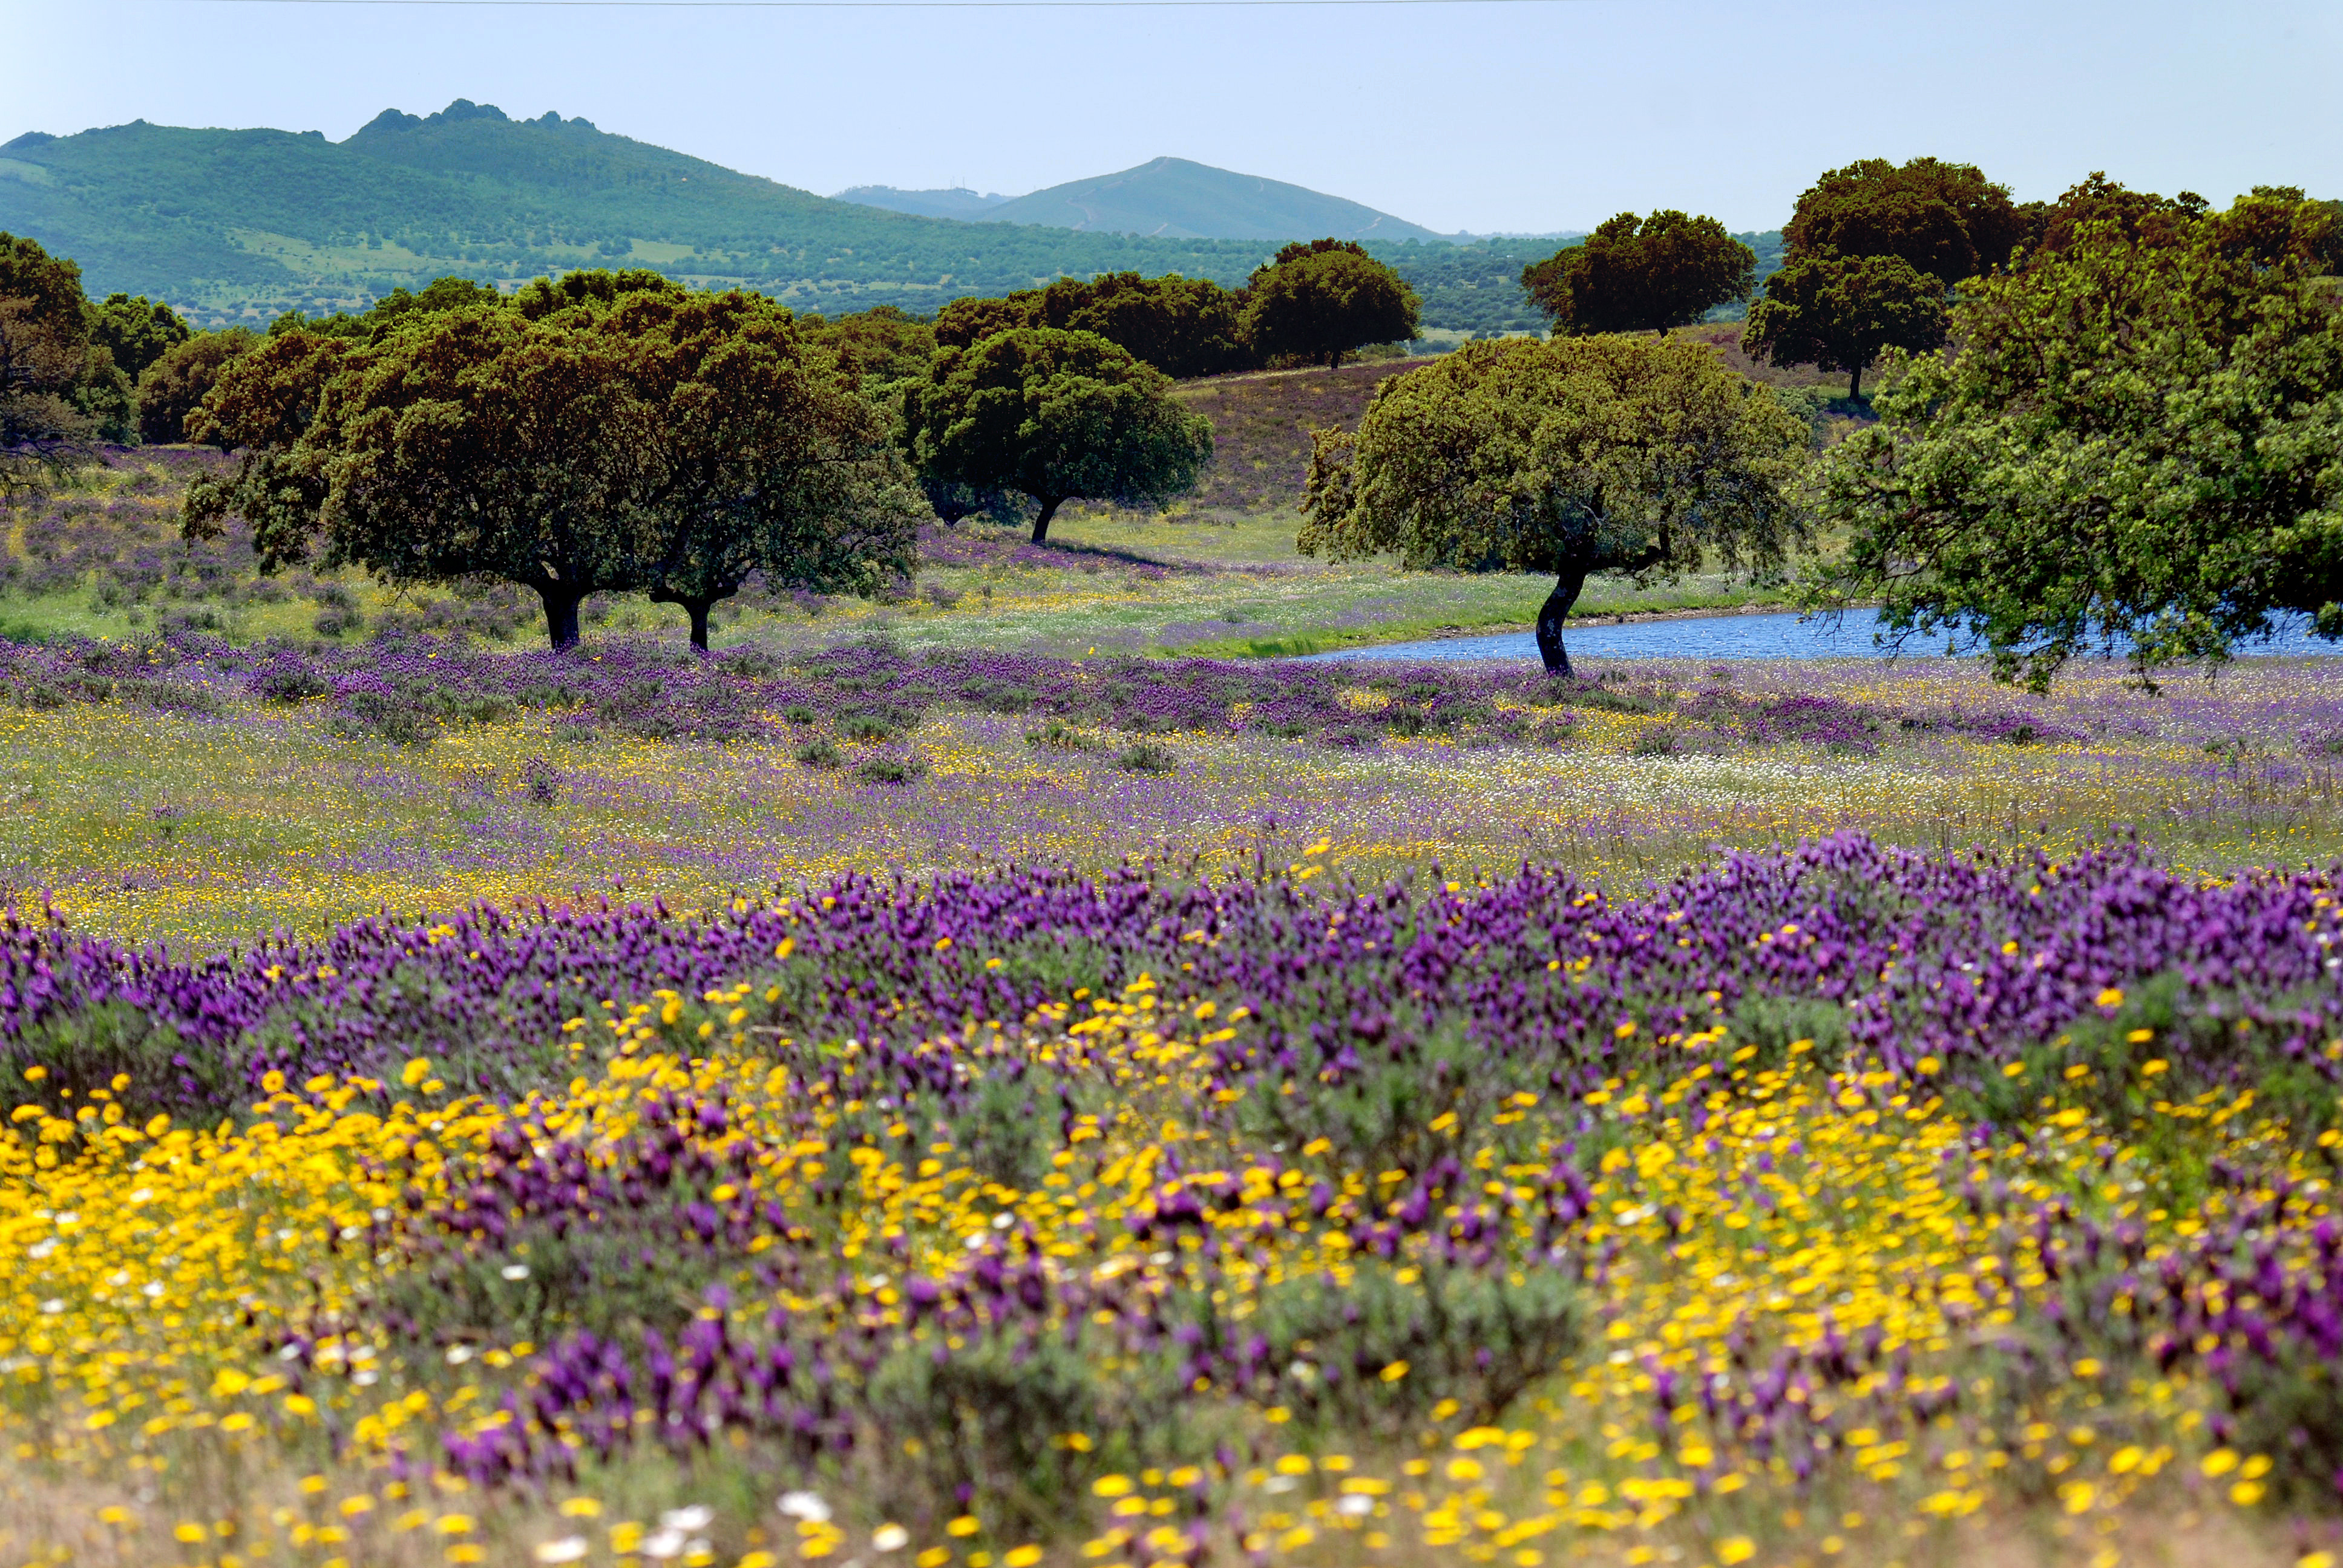 spanish vacations, where to visit in Spring, Springtime vacation ideas, Spain places to visit